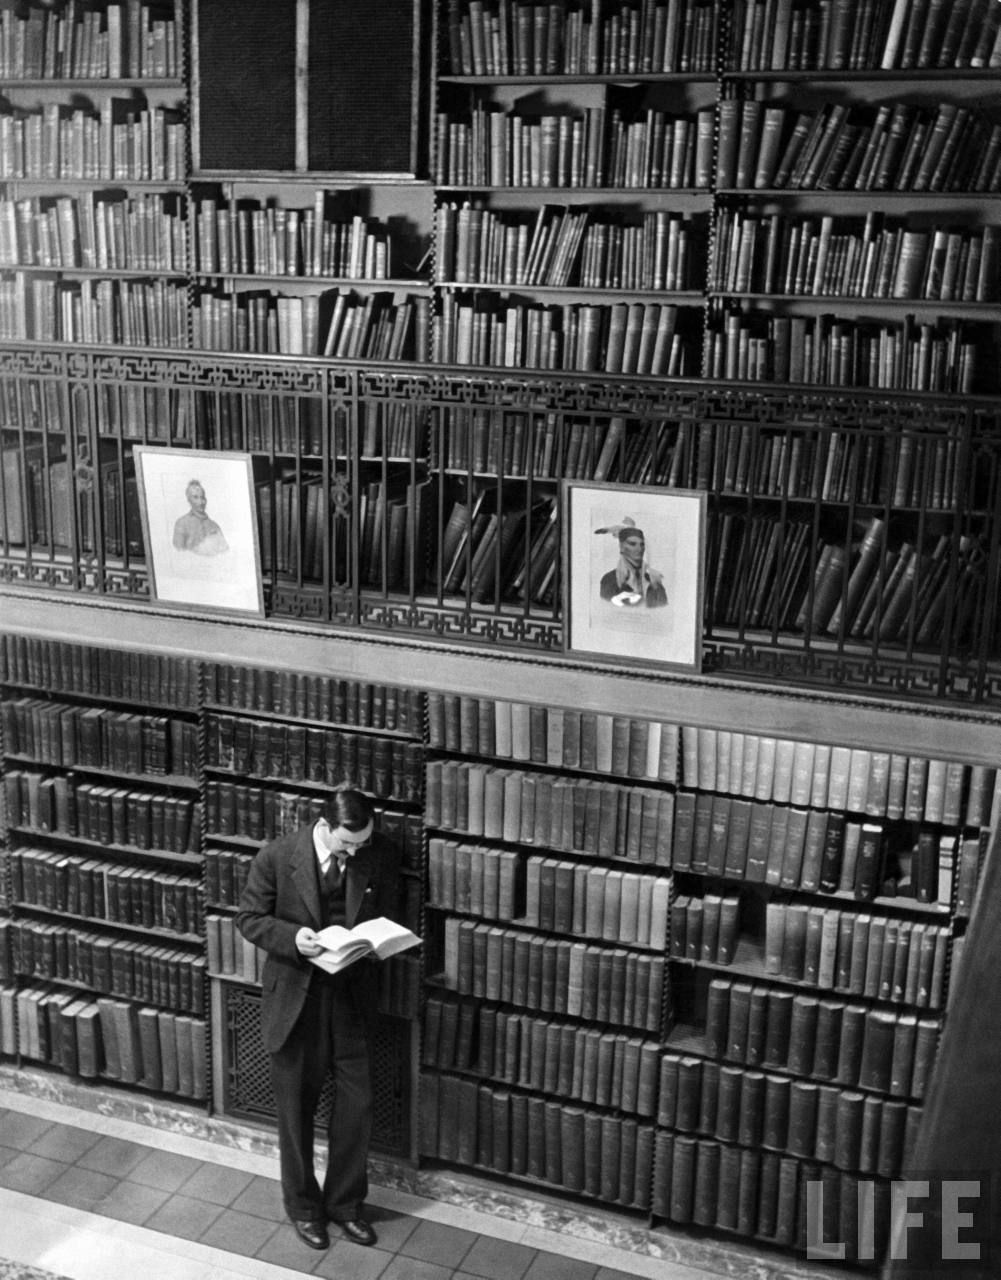 Author Hoffman Reynolds Hays reading book among shelves in American History Room in New York Public Library, 1944. Photo By Alfred Eisenstaedt. LIFE. Hays was a poet, translator, novelist and playwright, an historian of anthropology and zoology, and a teacher.